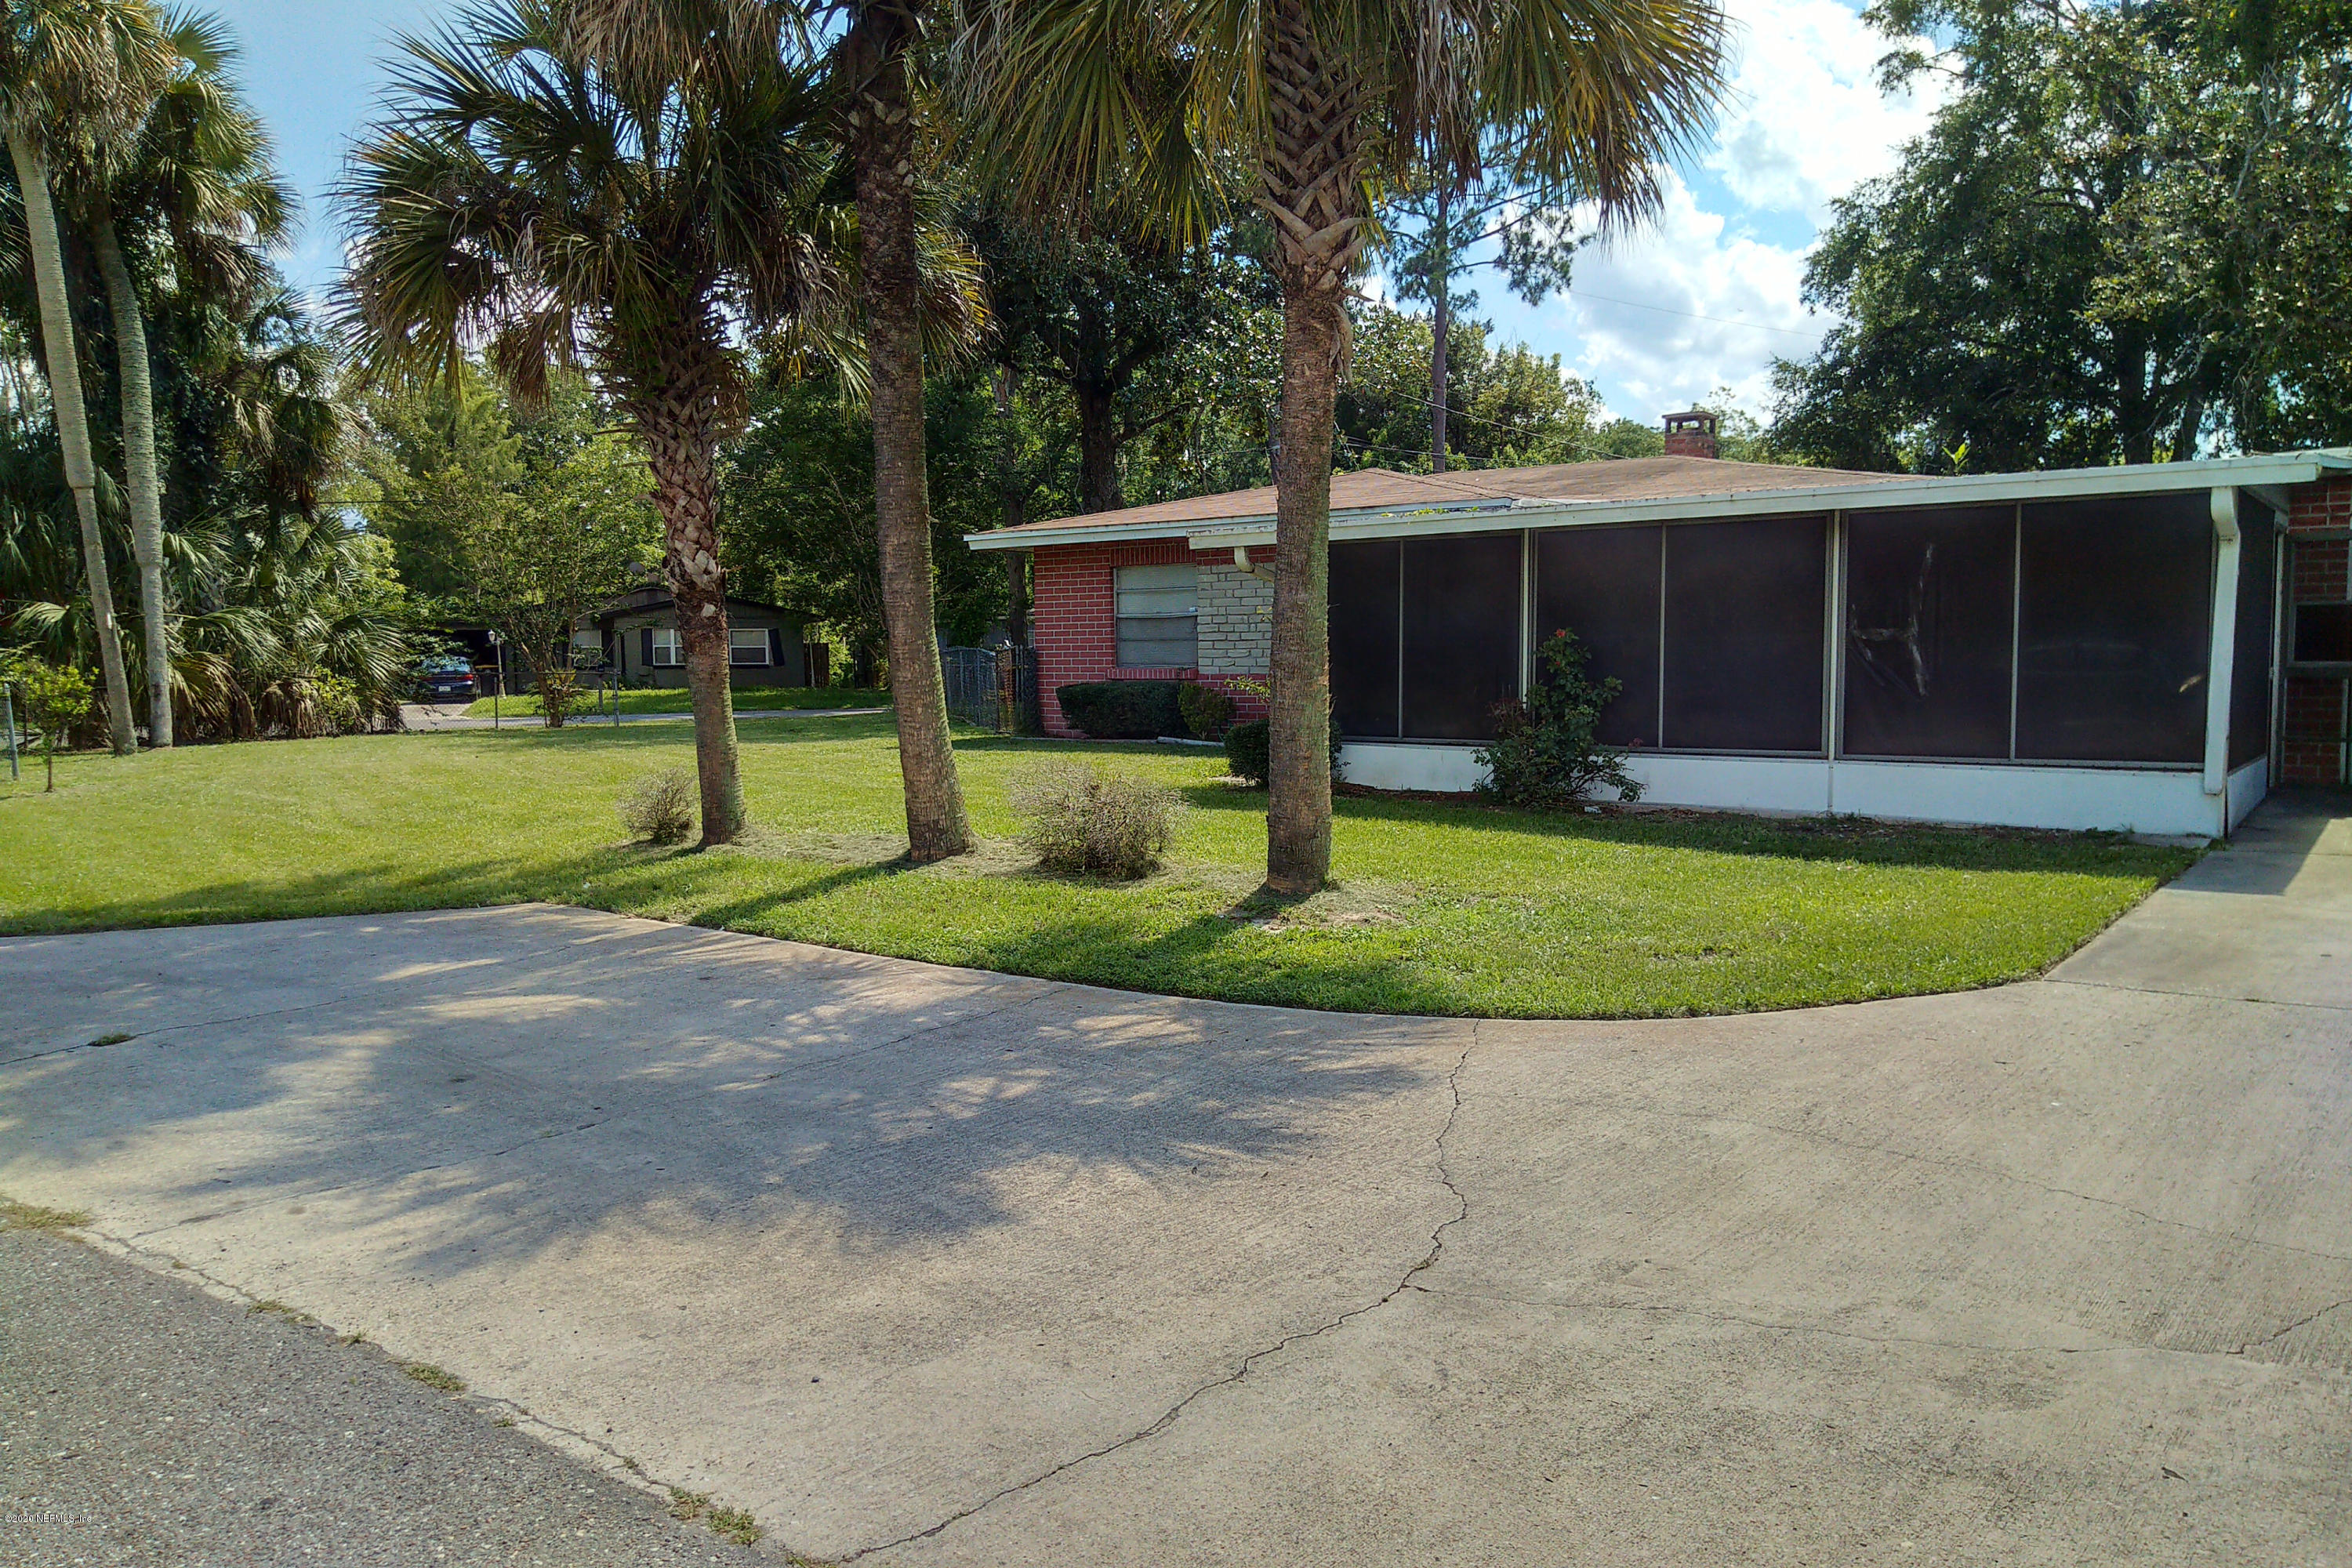 5716 BANYAN, JACKSONVILLE, FLORIDA 32244, 4 Bedrooms Bedrooms, ,2 BathroomsBathrooms,Residential,For sale,BANYAN,1059474